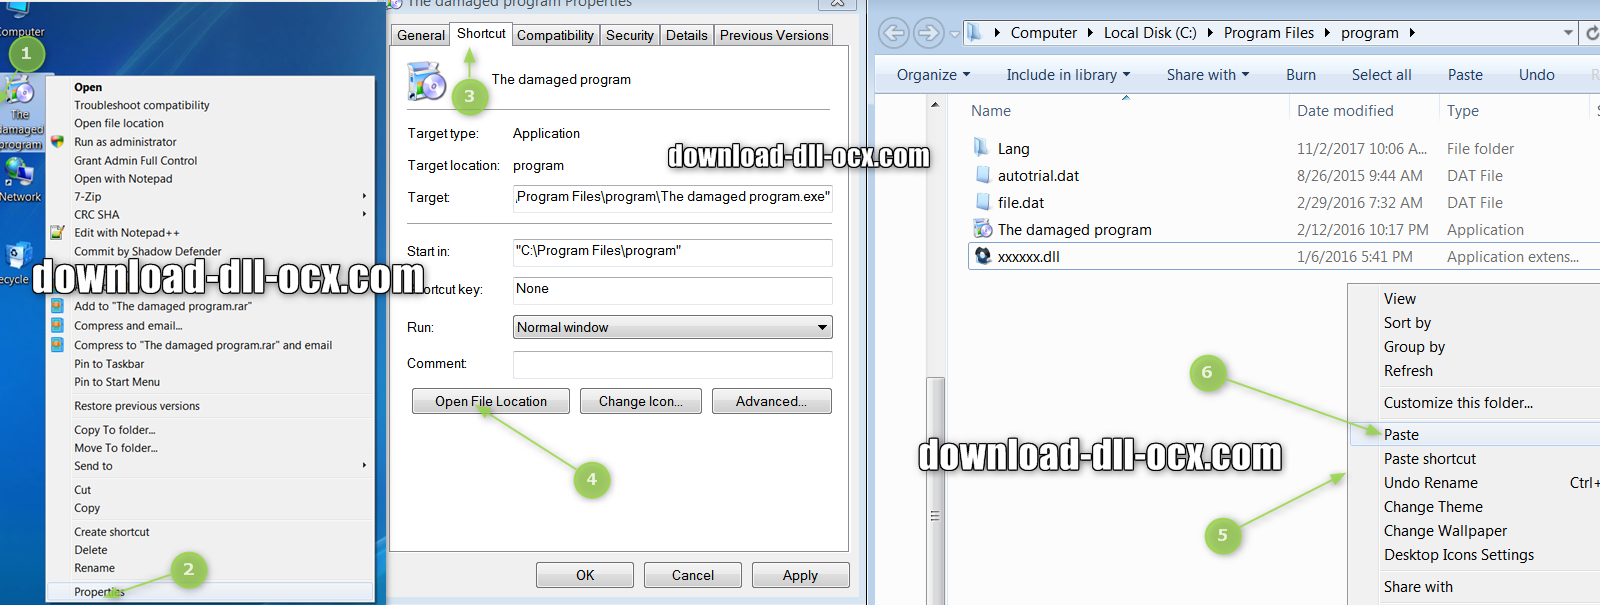 how to install Spcommon.dll file? for fix missing